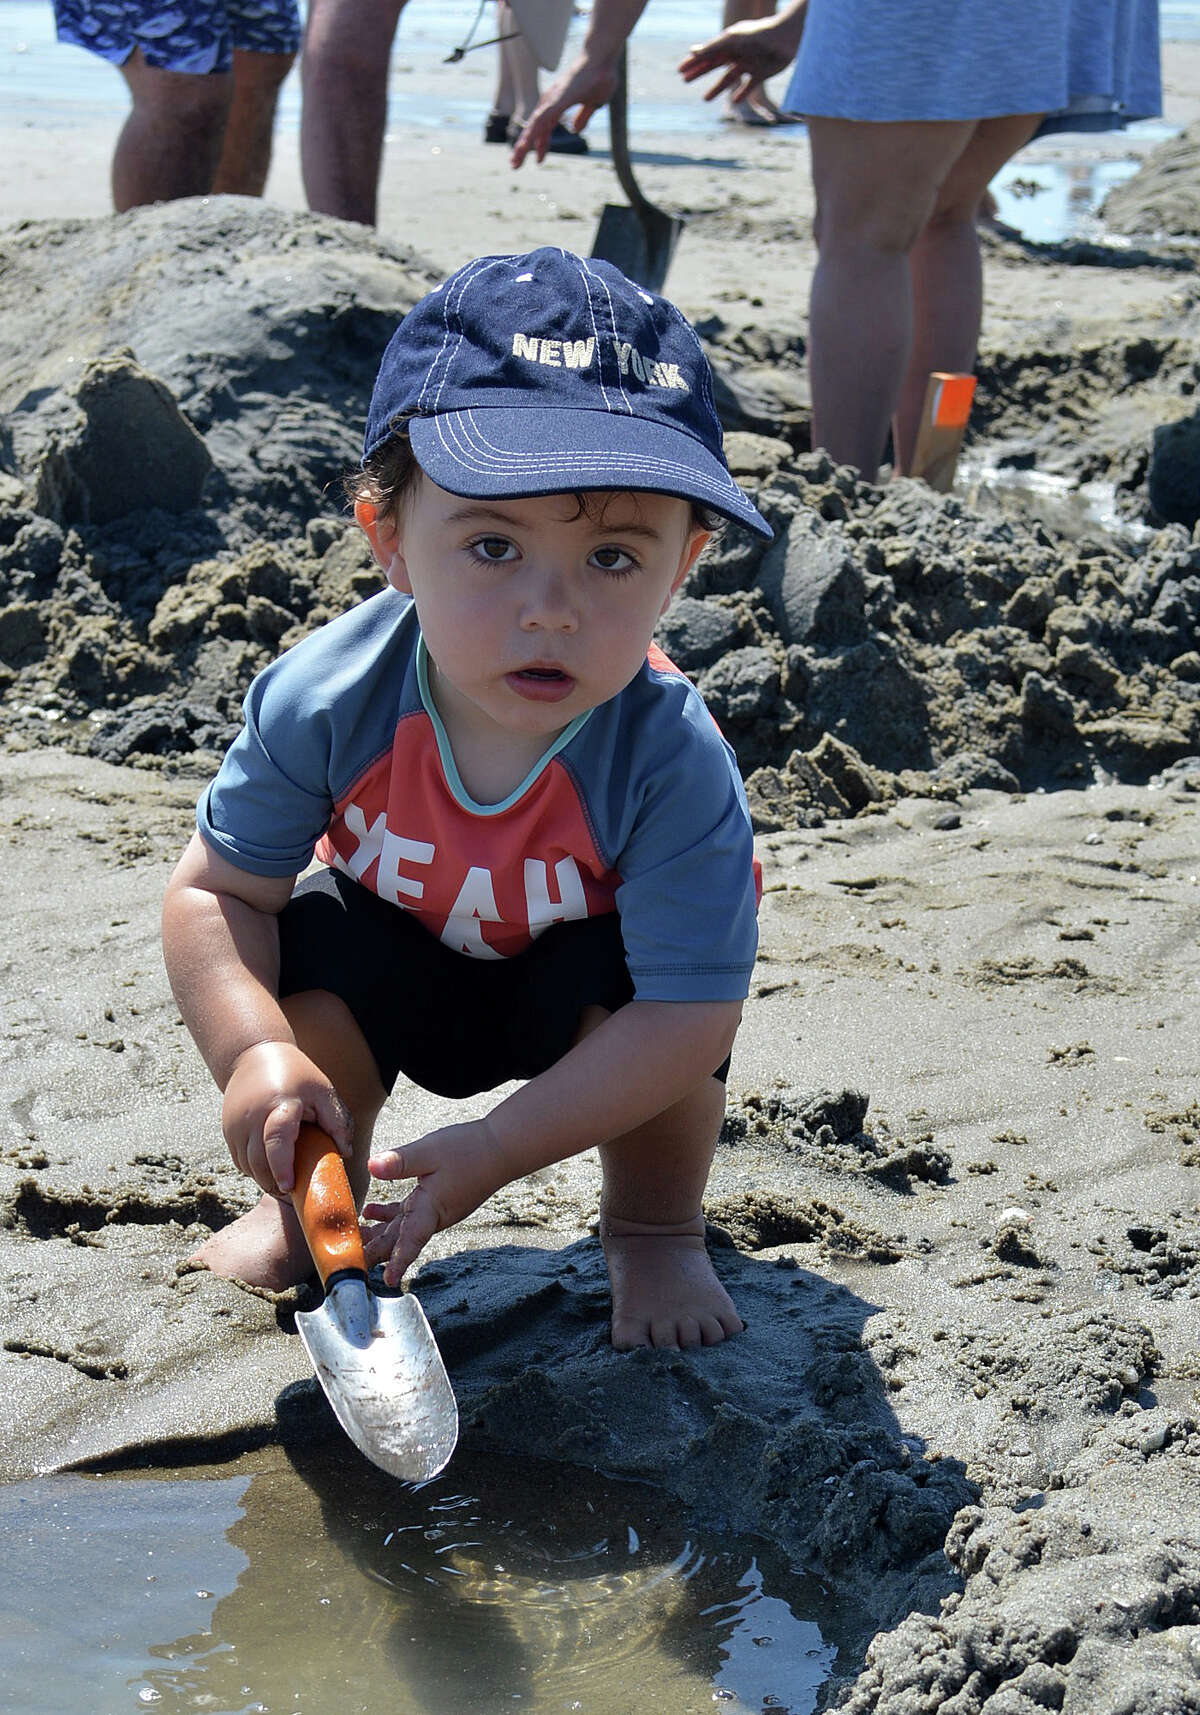 Two-year-old Jake Kimmel Bliman of Fairfield practices his shoveling skills at Penfield Beach in preparation for competing in future sand sculpture contests sponsored by Fairfield PAL.